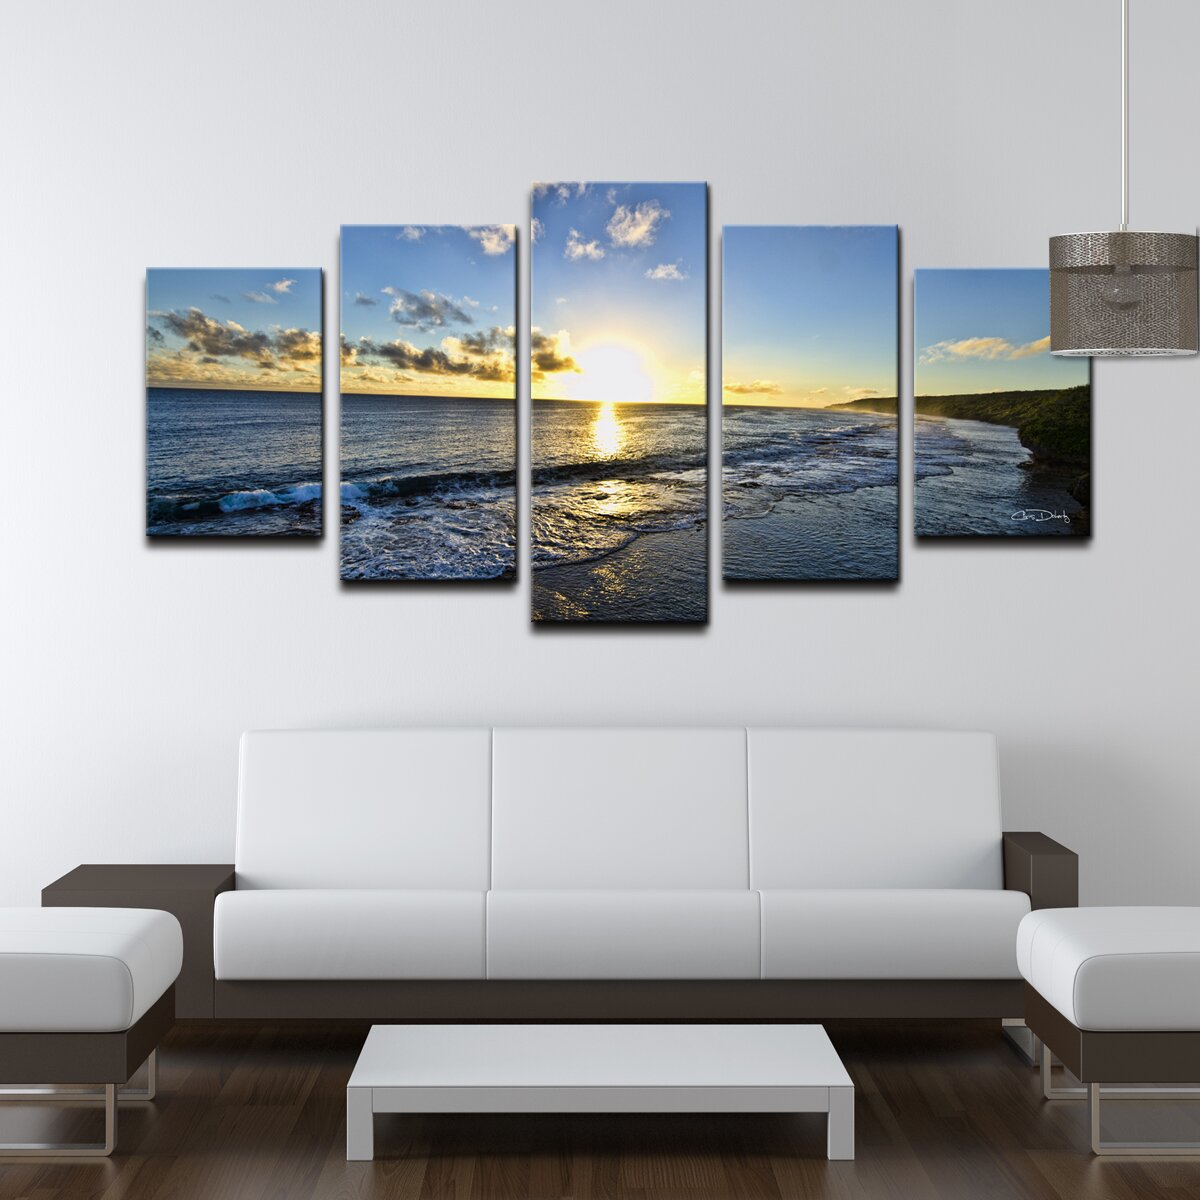 Ready2hangart 39 day break 39 by christopher doherty 5 piece for Ready set decor reviews